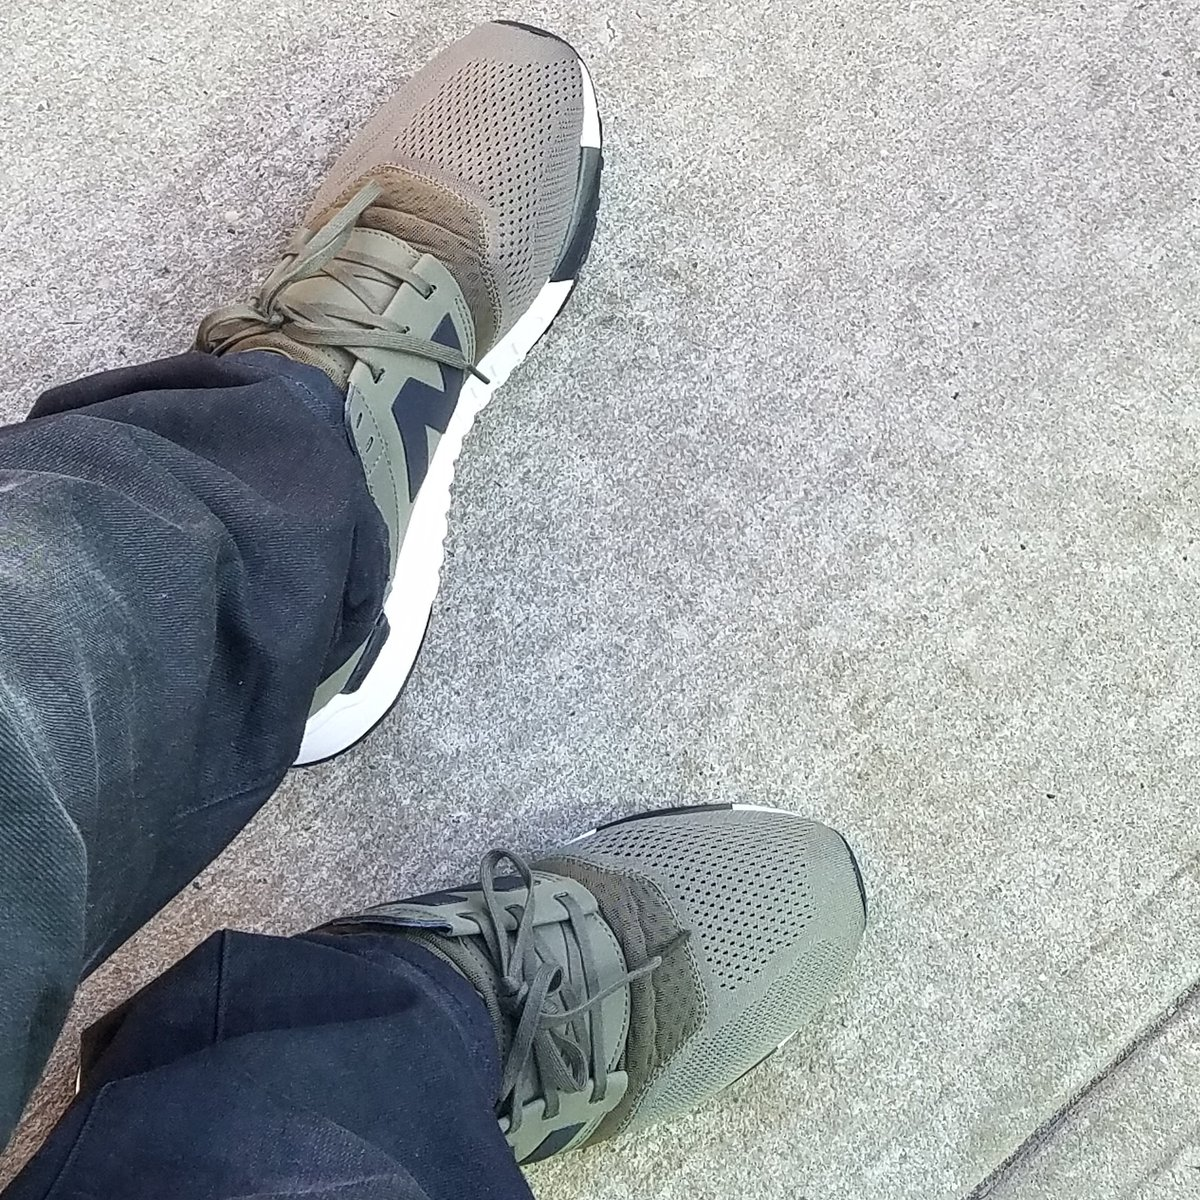 #NewBalance #247 #NewBalance247 #Brooklyn #Nyc #SneakerLover Great Weather.... Show that collection <br>http://pic.twitter.com/fhl2B1IZS2